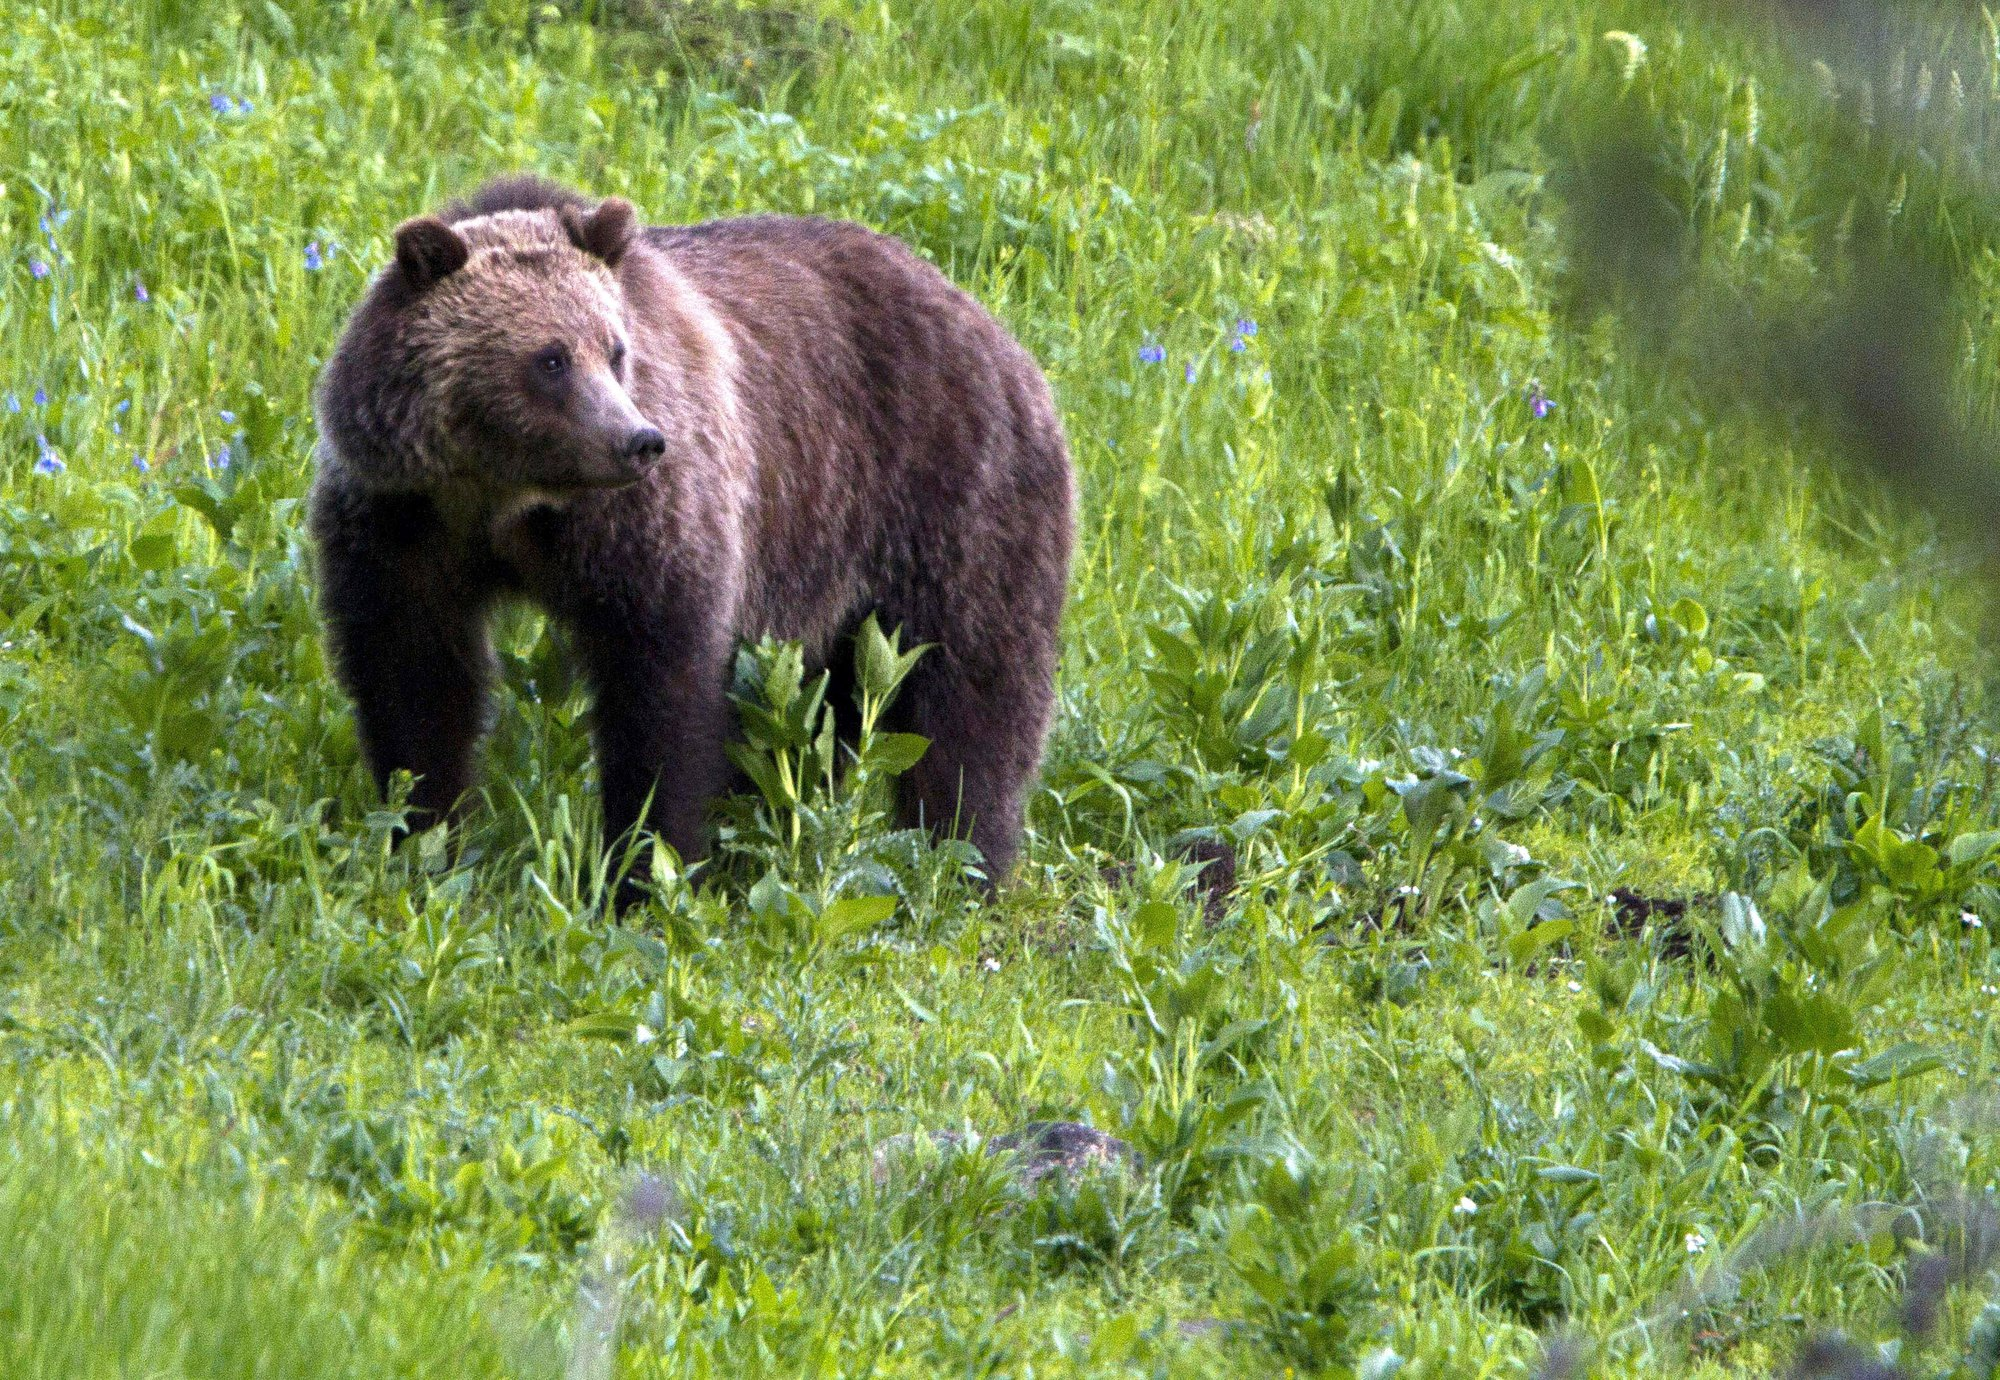 Wyoming, Idaho weigh options after grizzly hunt ruling